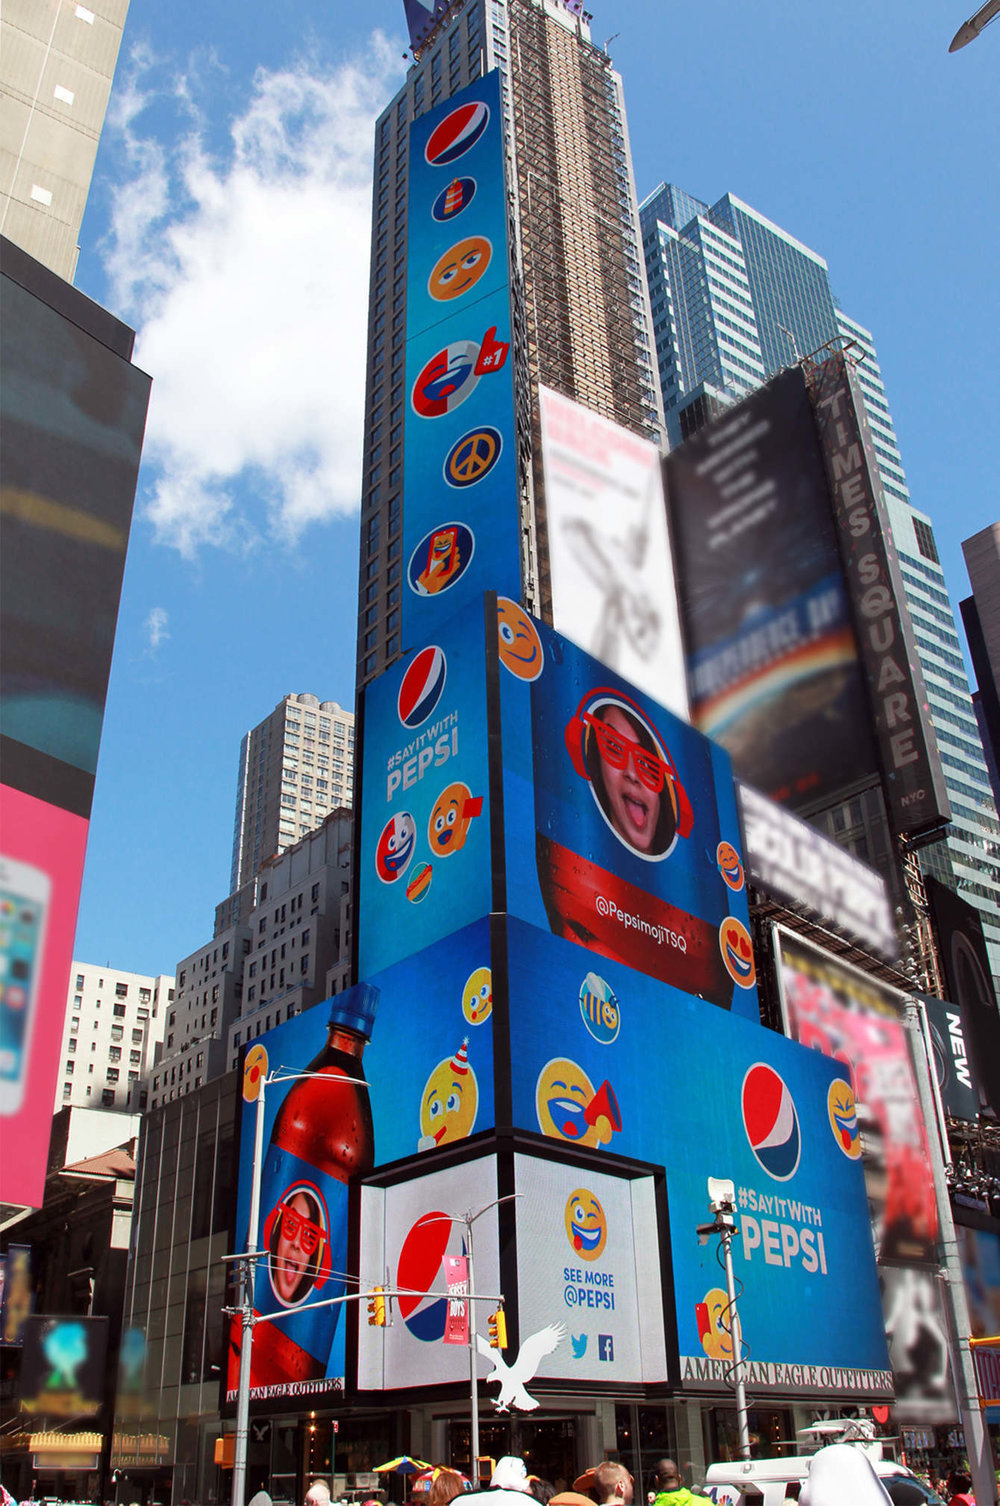 Then we broadcast those personalized Pepsimojis across three of the biggest billboards in the country.